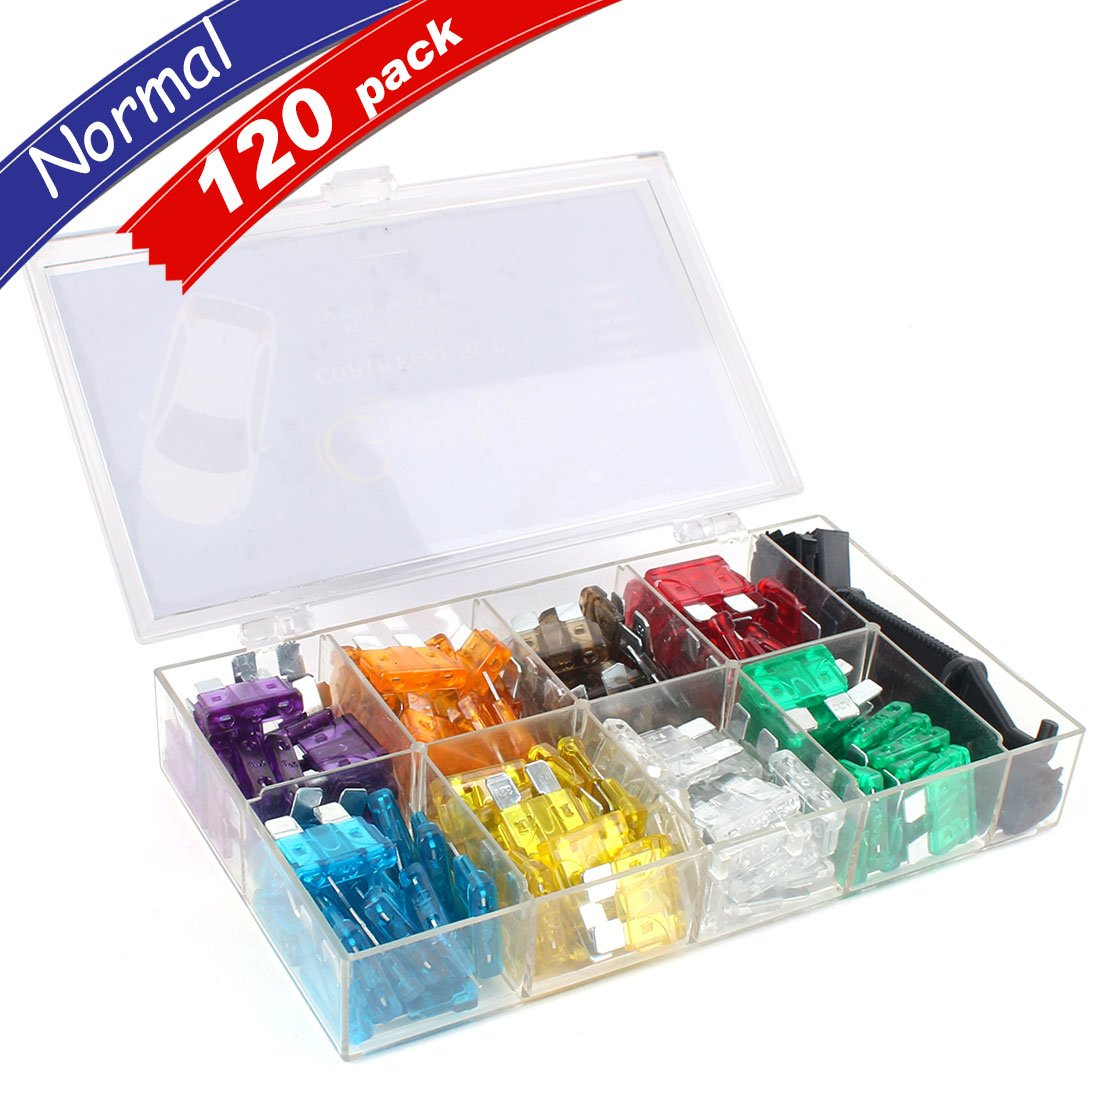 Copap 120PCS Assorted Auto Car Truck Standard Blade Fuse Set (3, 5, 7.5, 10, 15, 20, 25, 30 AMP) Automotive Replacement Fuse Puller and Wipe Cloth Included